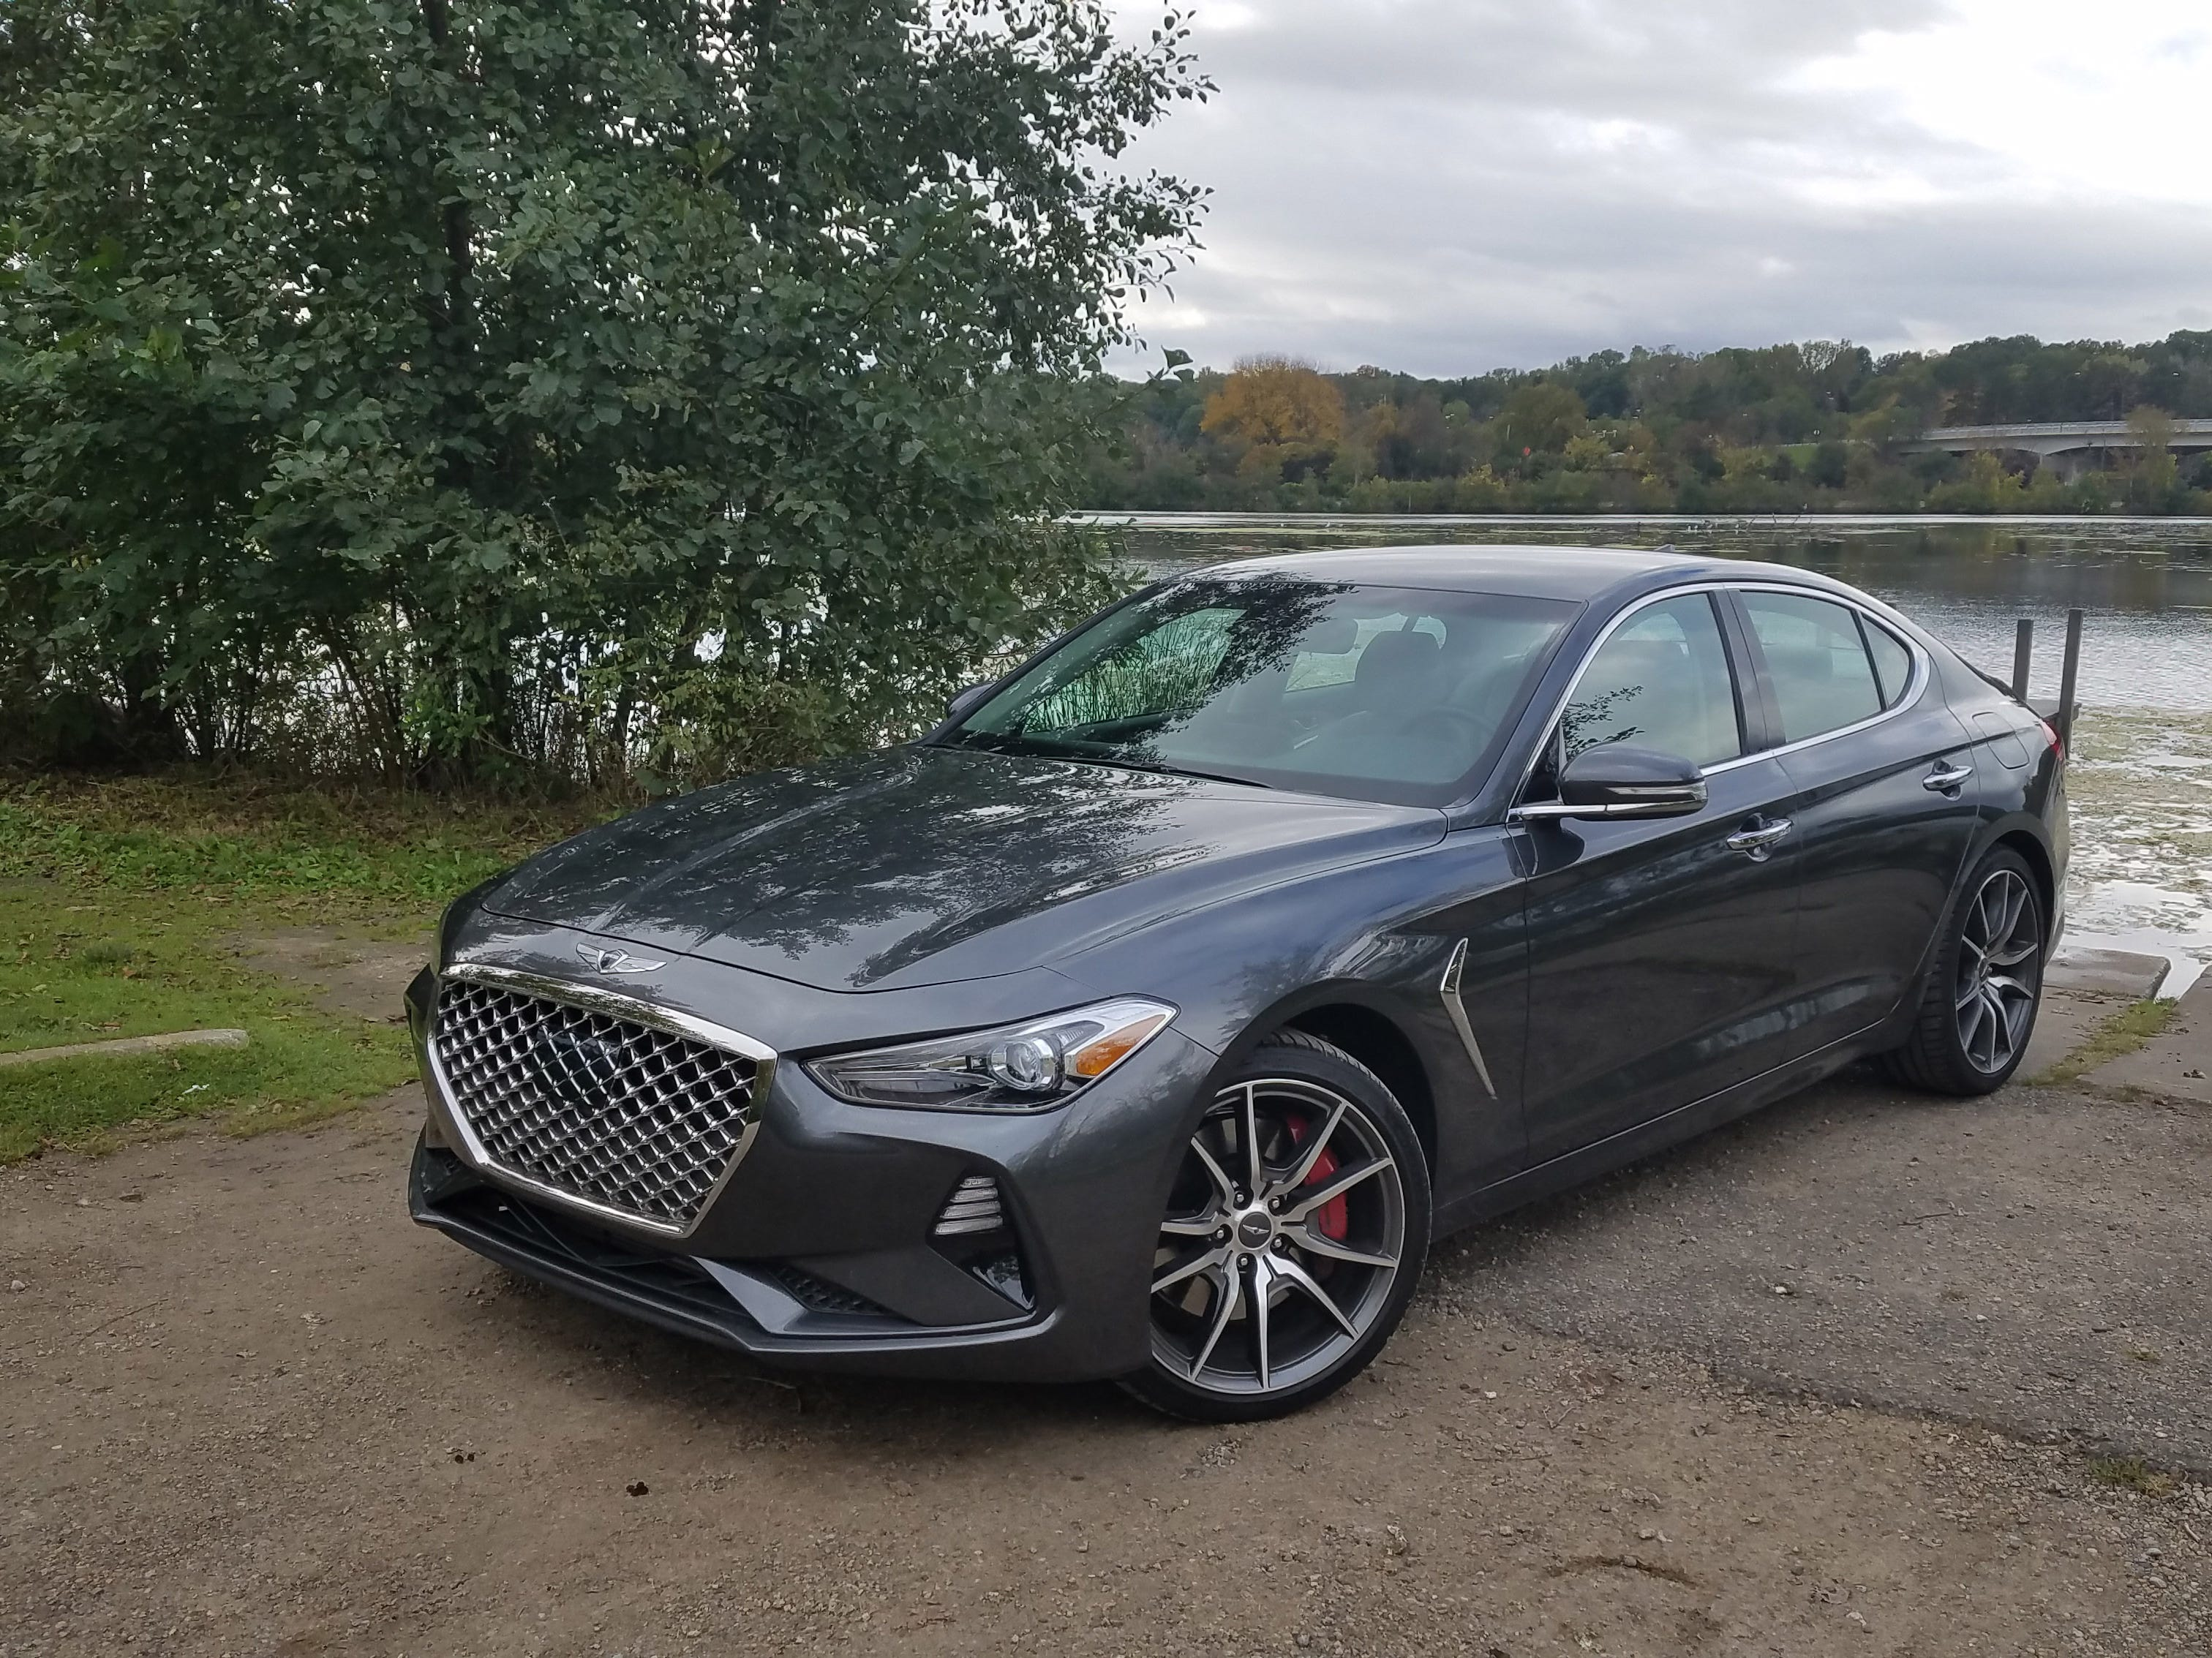 Though Michigan lake country, the 2019 Genesis G70 is a joyful escape vehicle with comfortable seats and nimble, corner-carving capability.